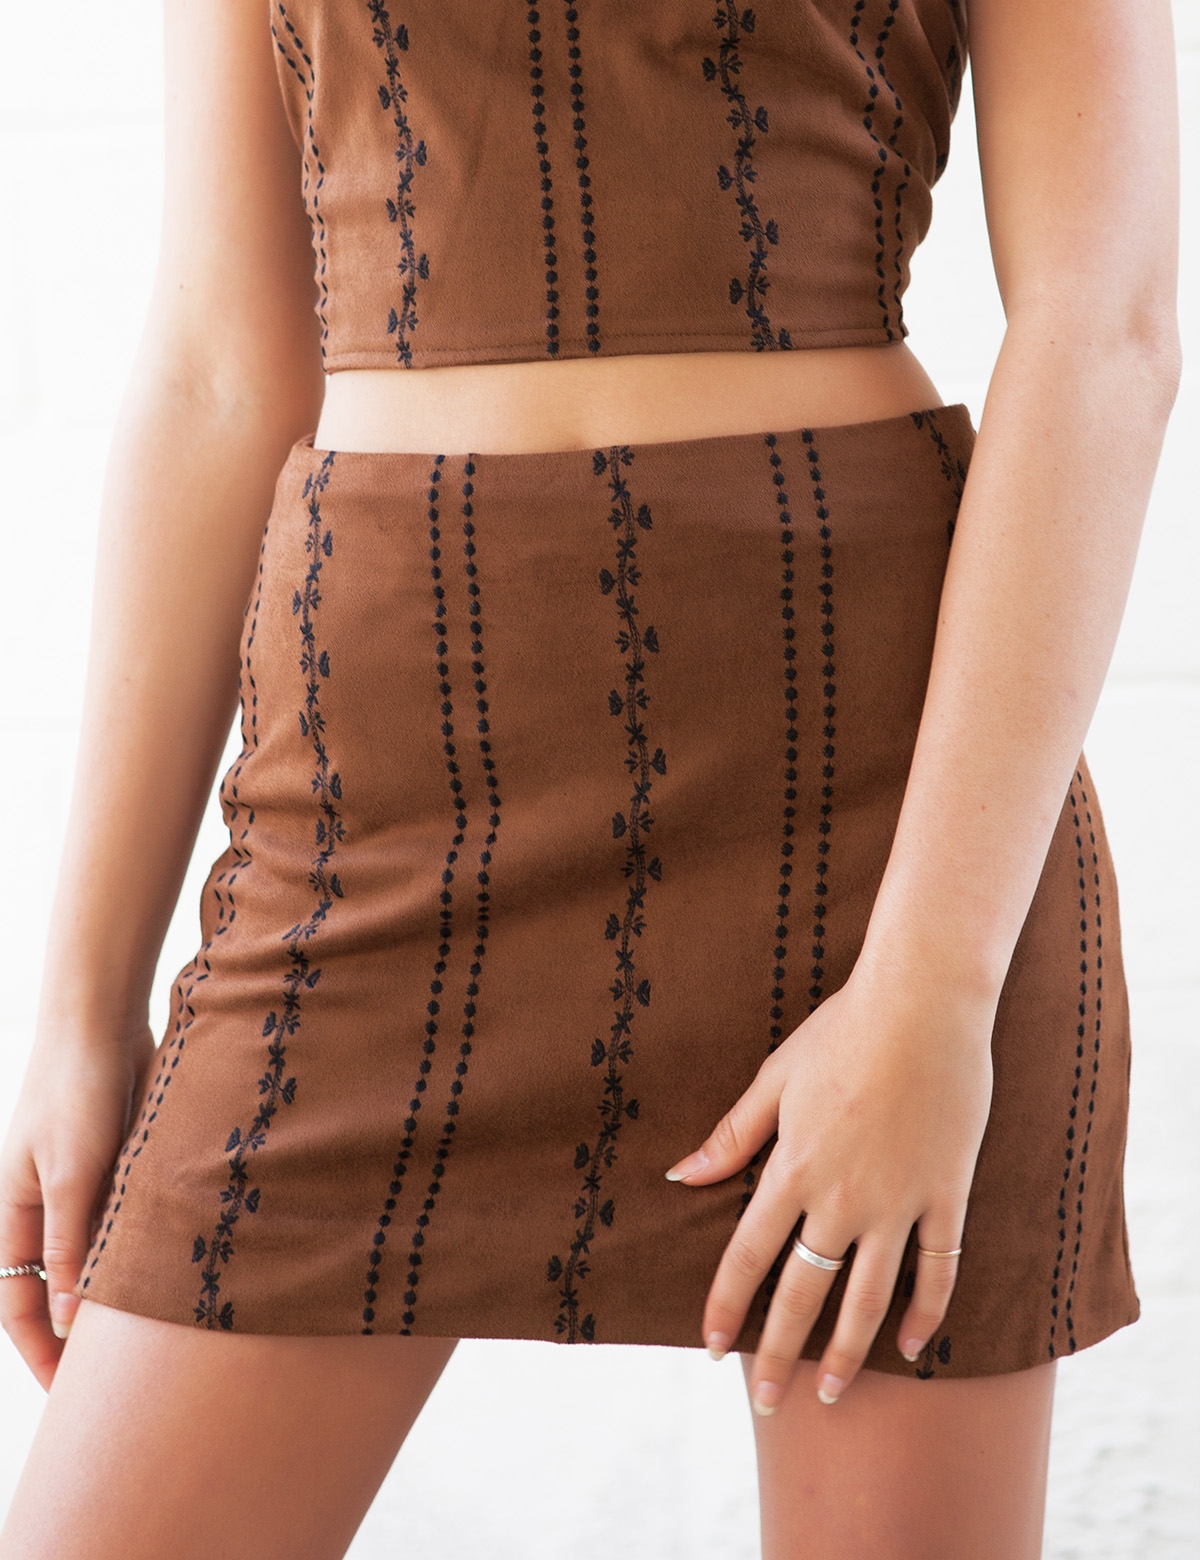 Lo Lo Brown Skirt